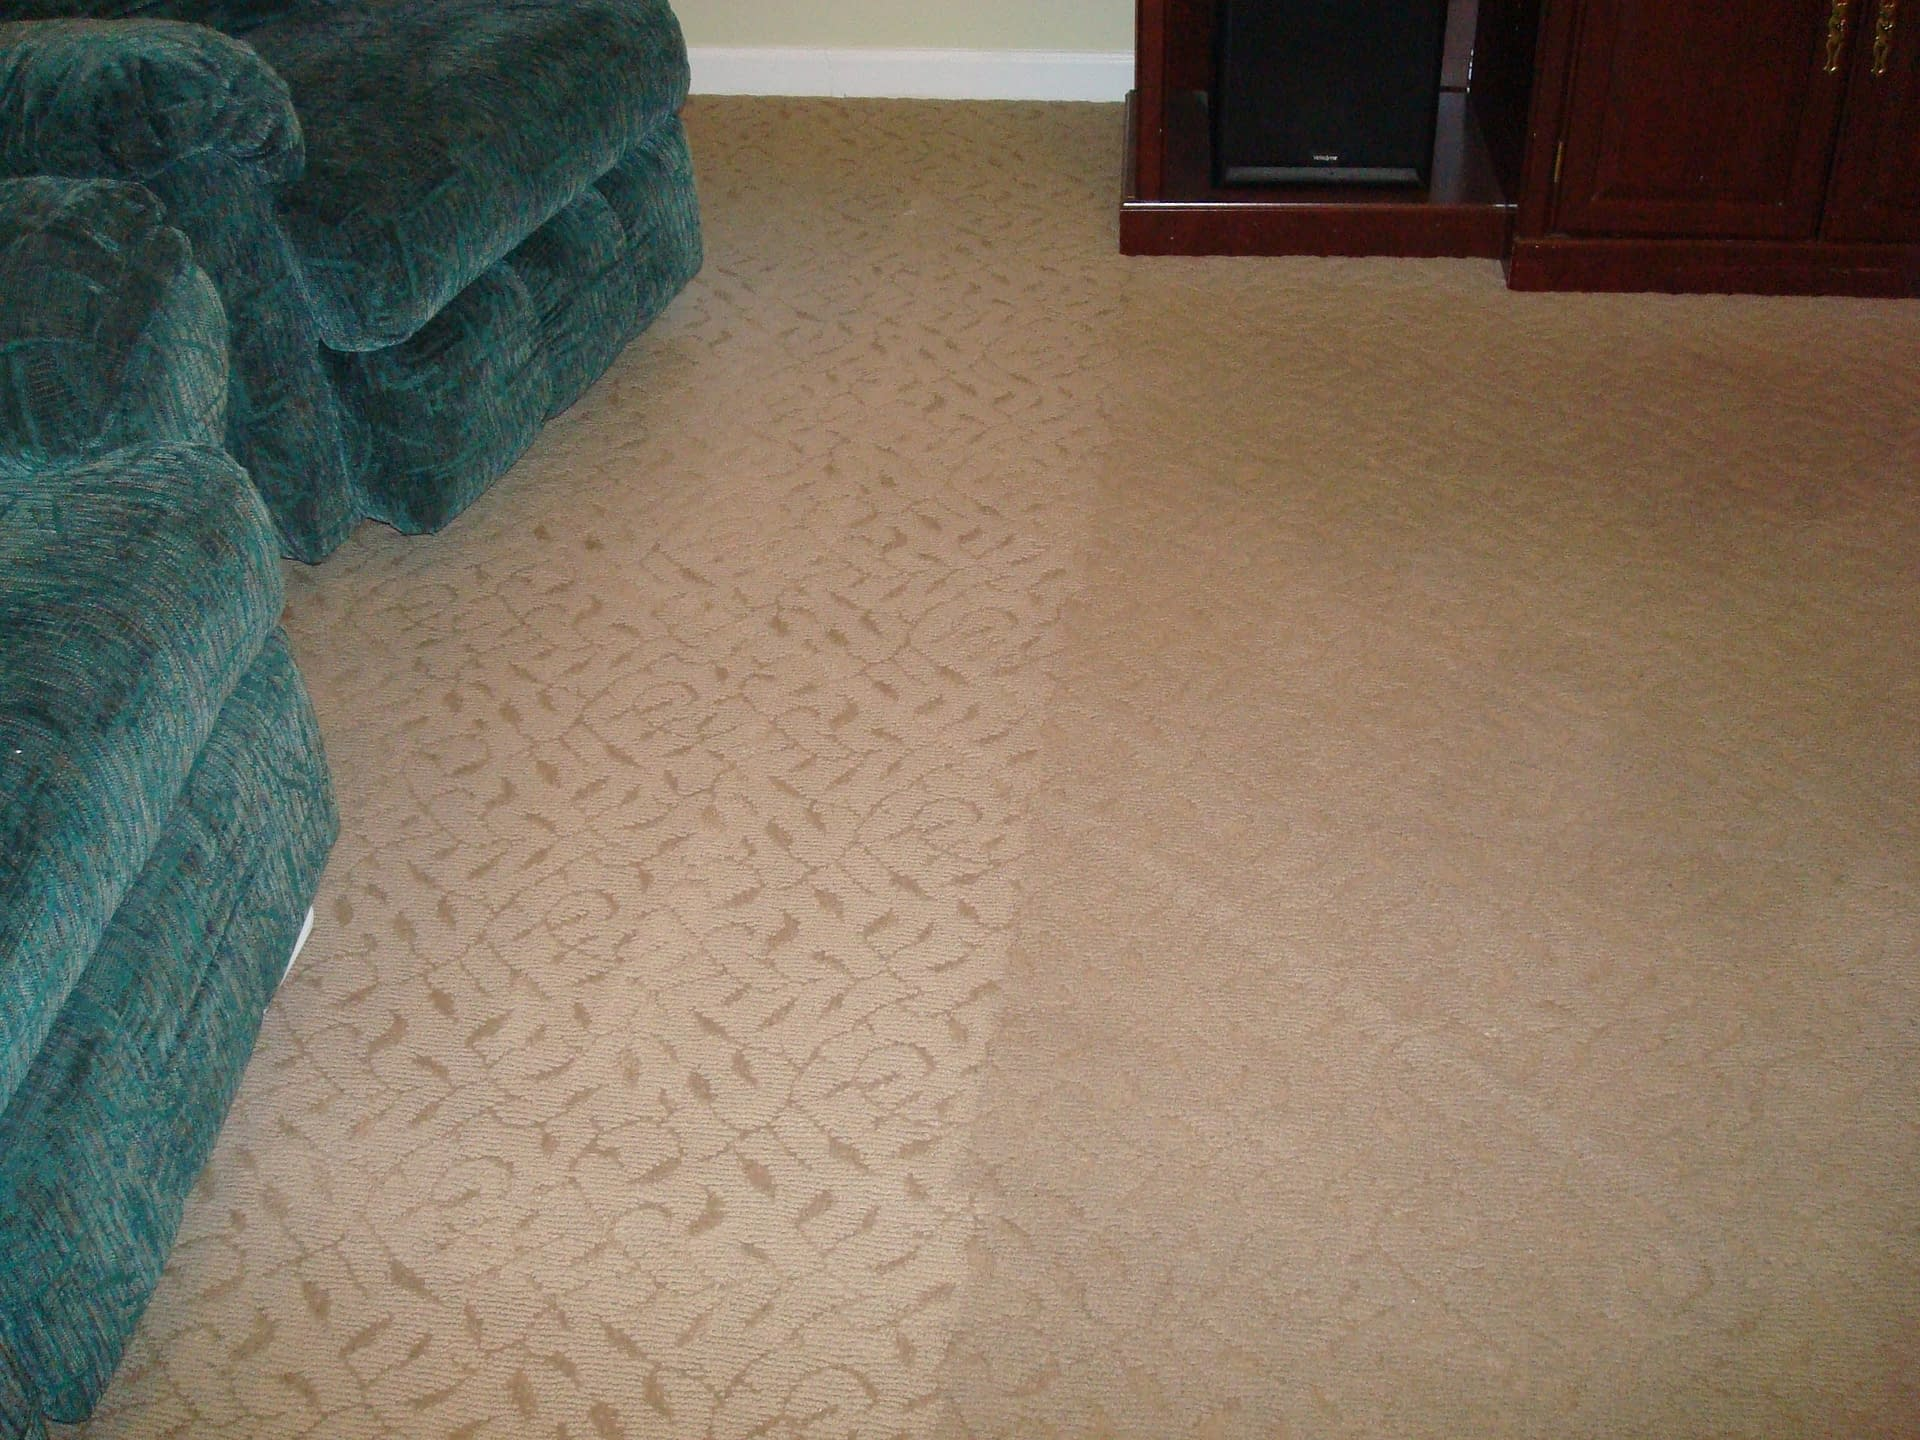 Family room carpet cleaned in Macungie, PA